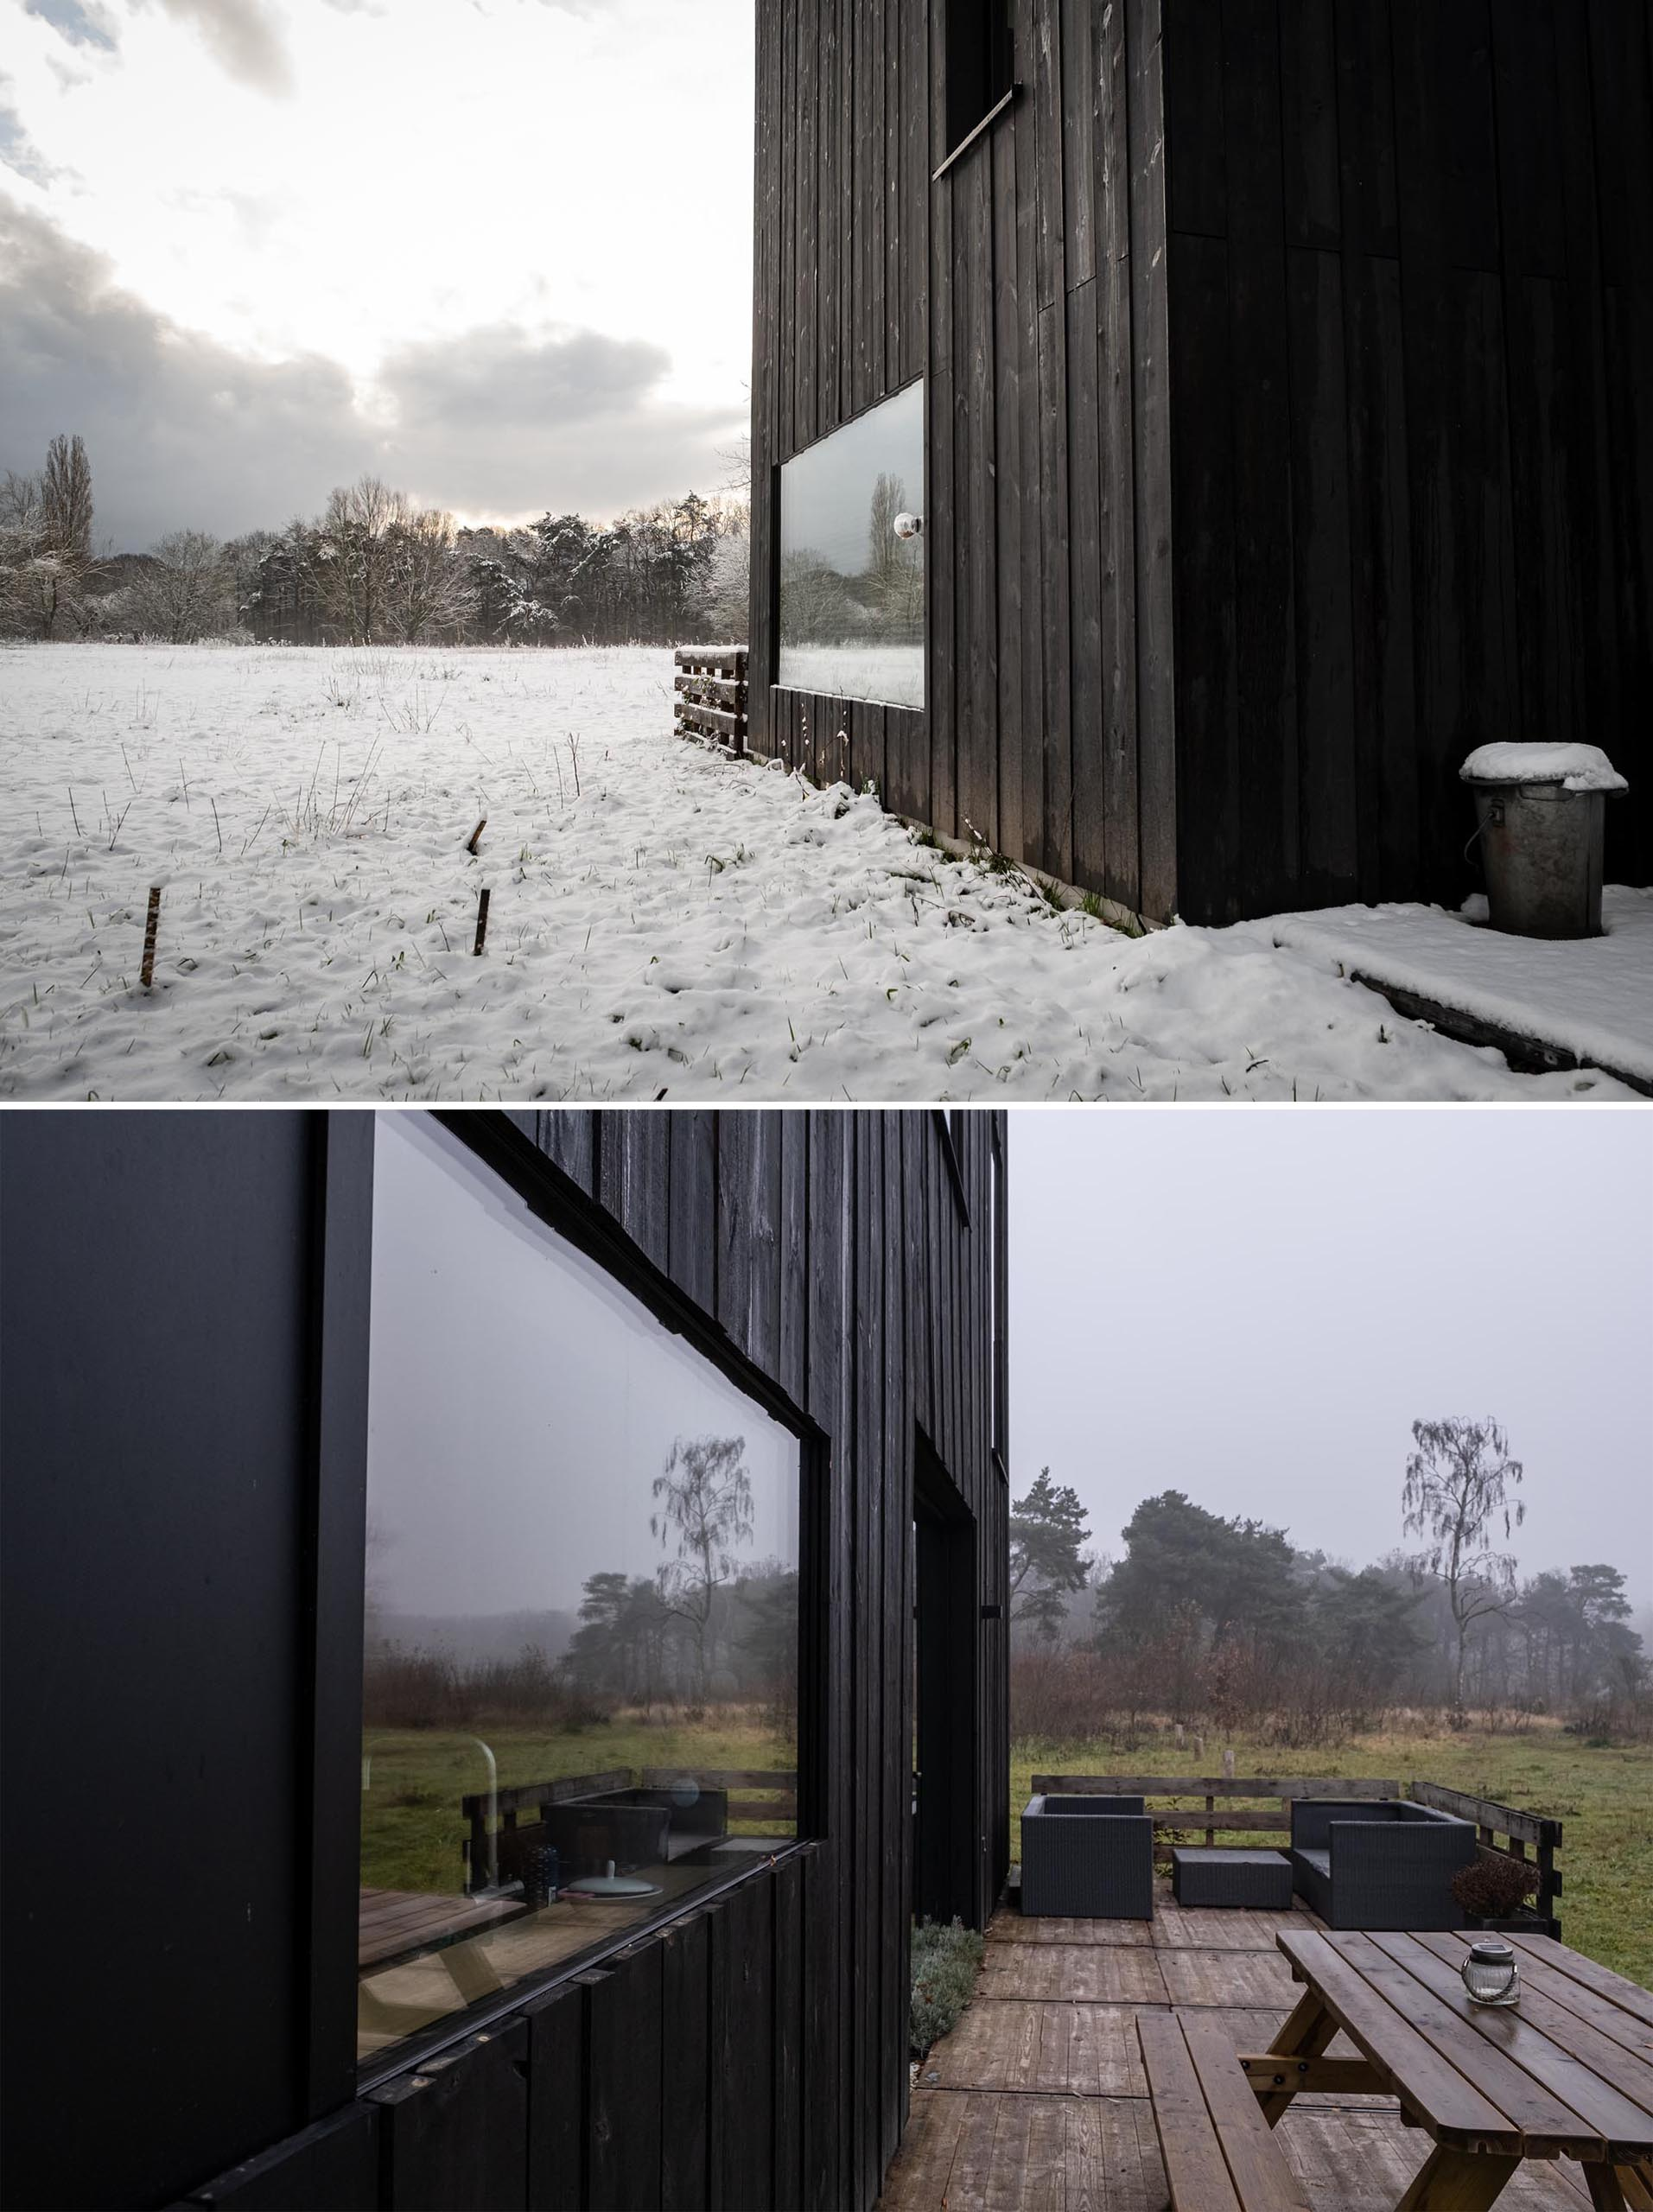 A modern prefab home with black wood siding and matching matte black window frames.